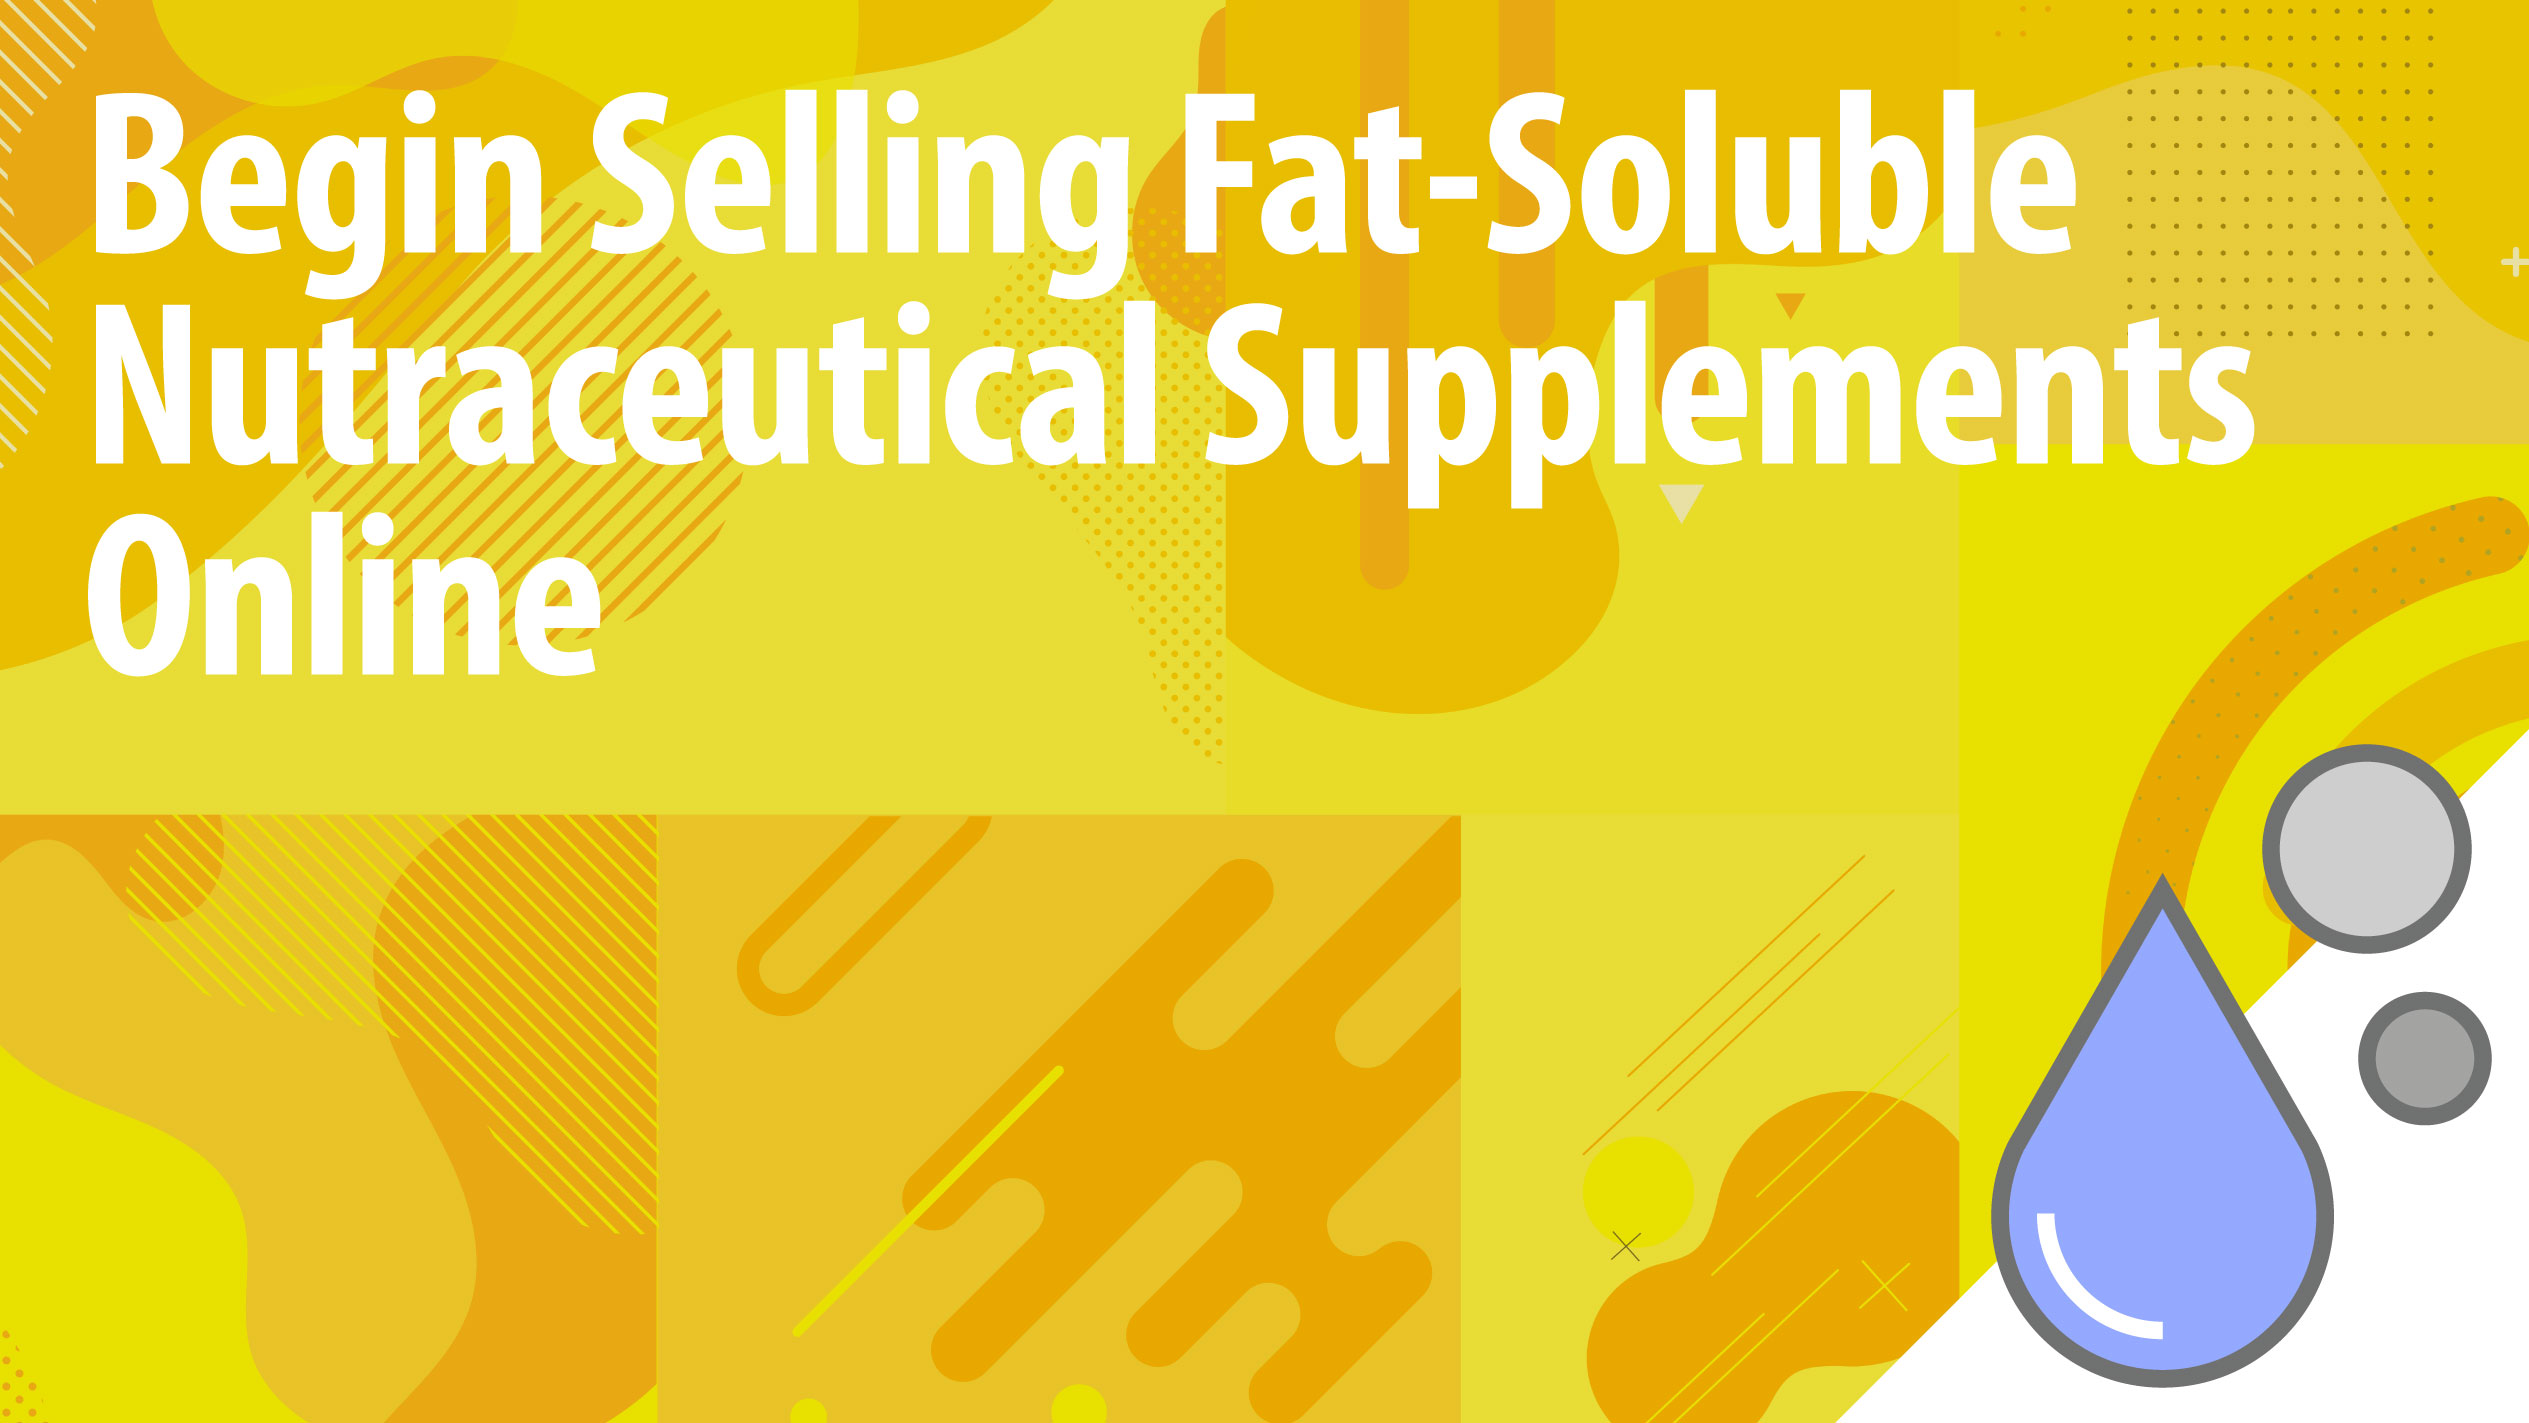 Begin Selling Fat-Soluble Nutraceutical Supplements Online